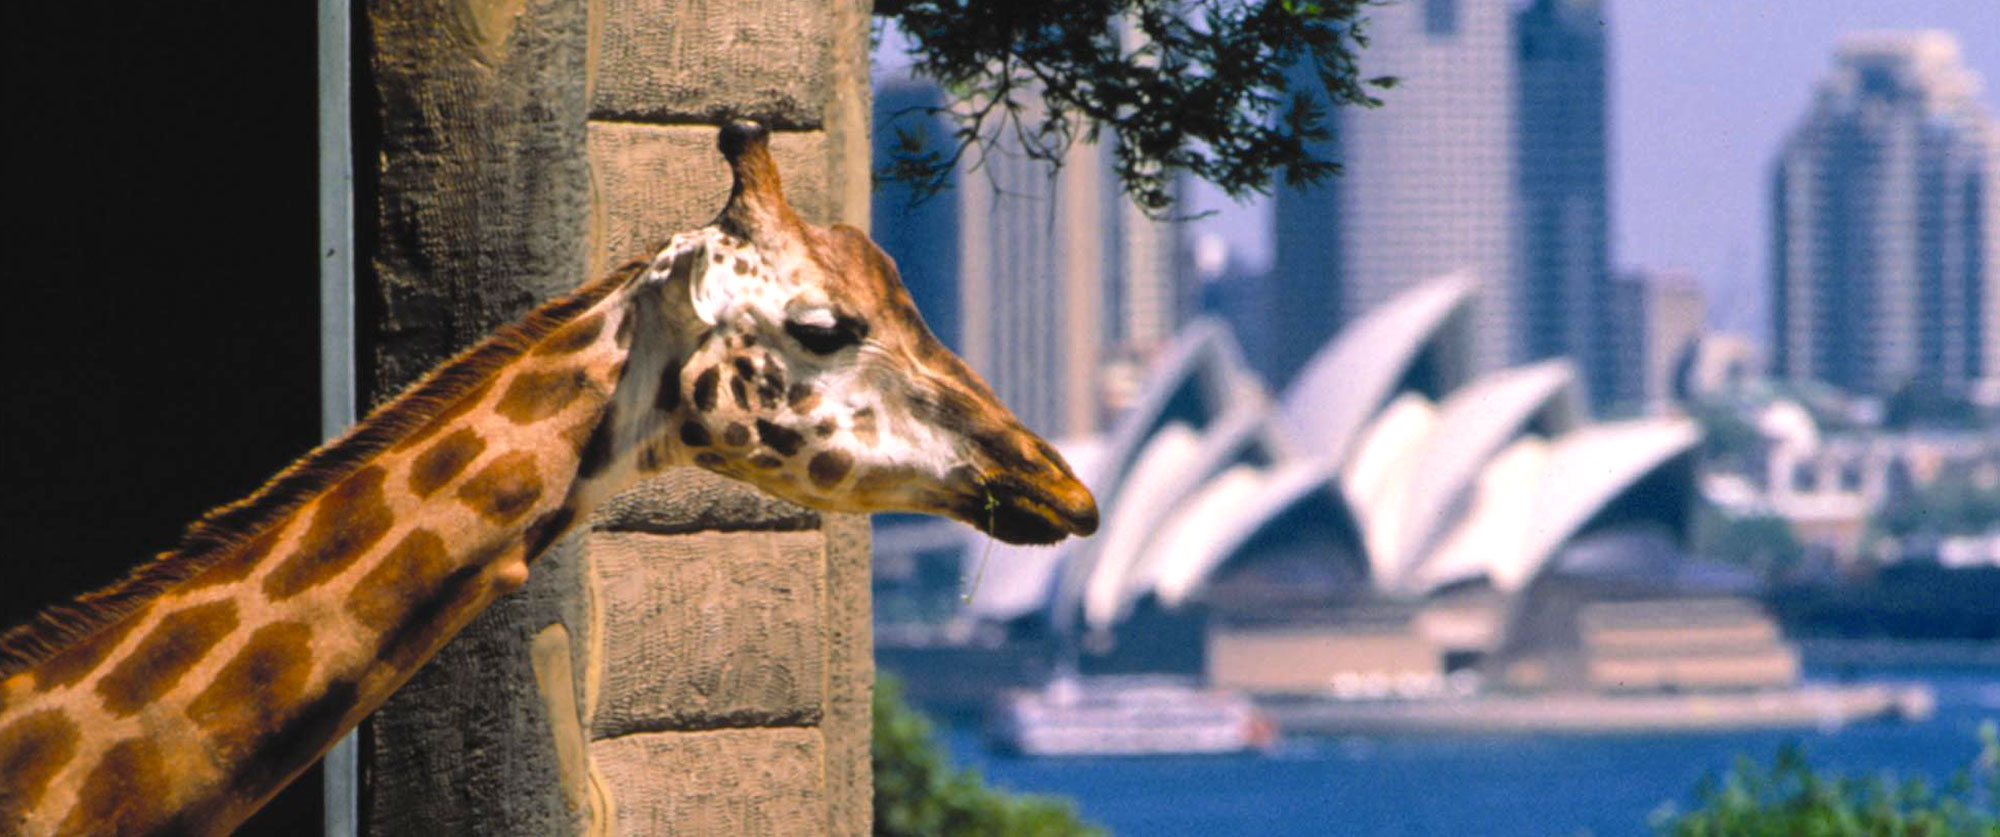 Australia Family Vacation Packages: Beaches and Wildlife